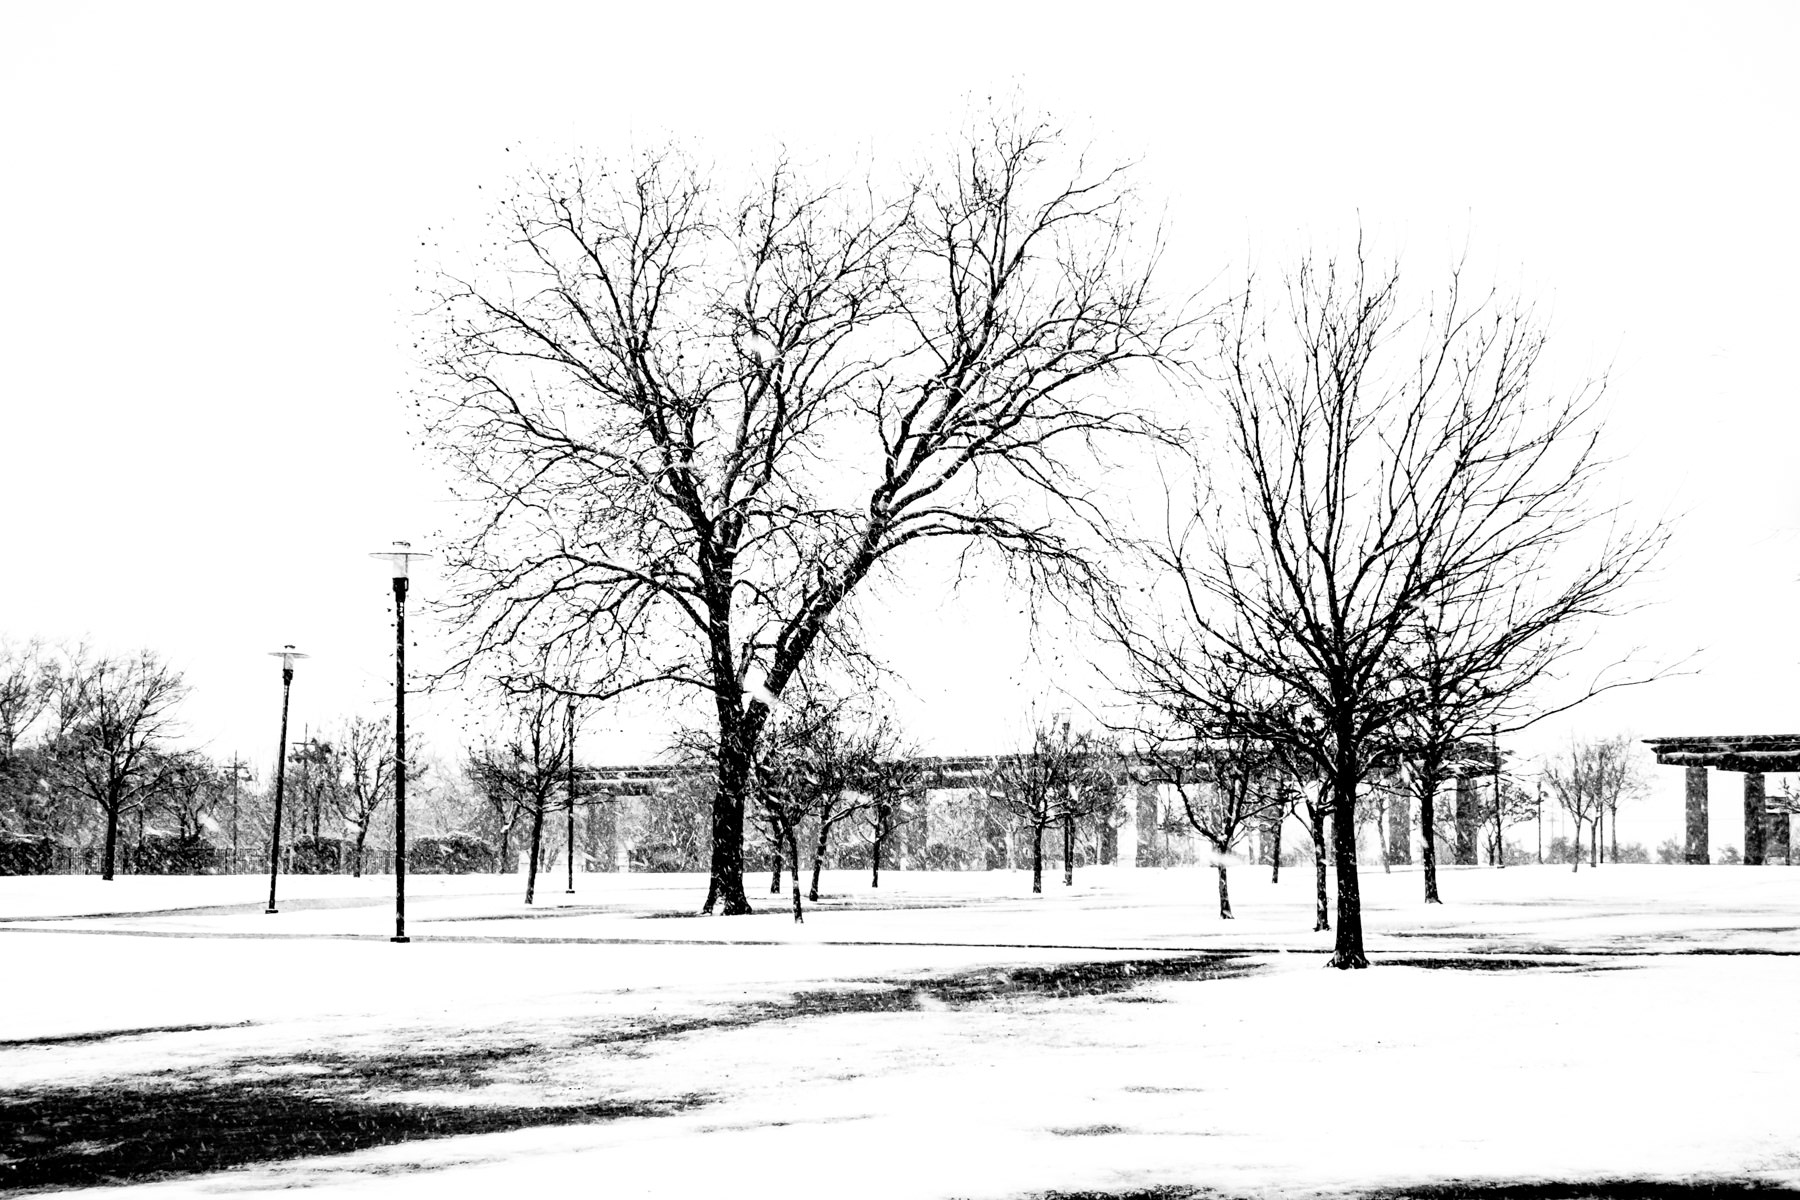 A cold, snowy day at Addison Circle Park, Addison, Texas.